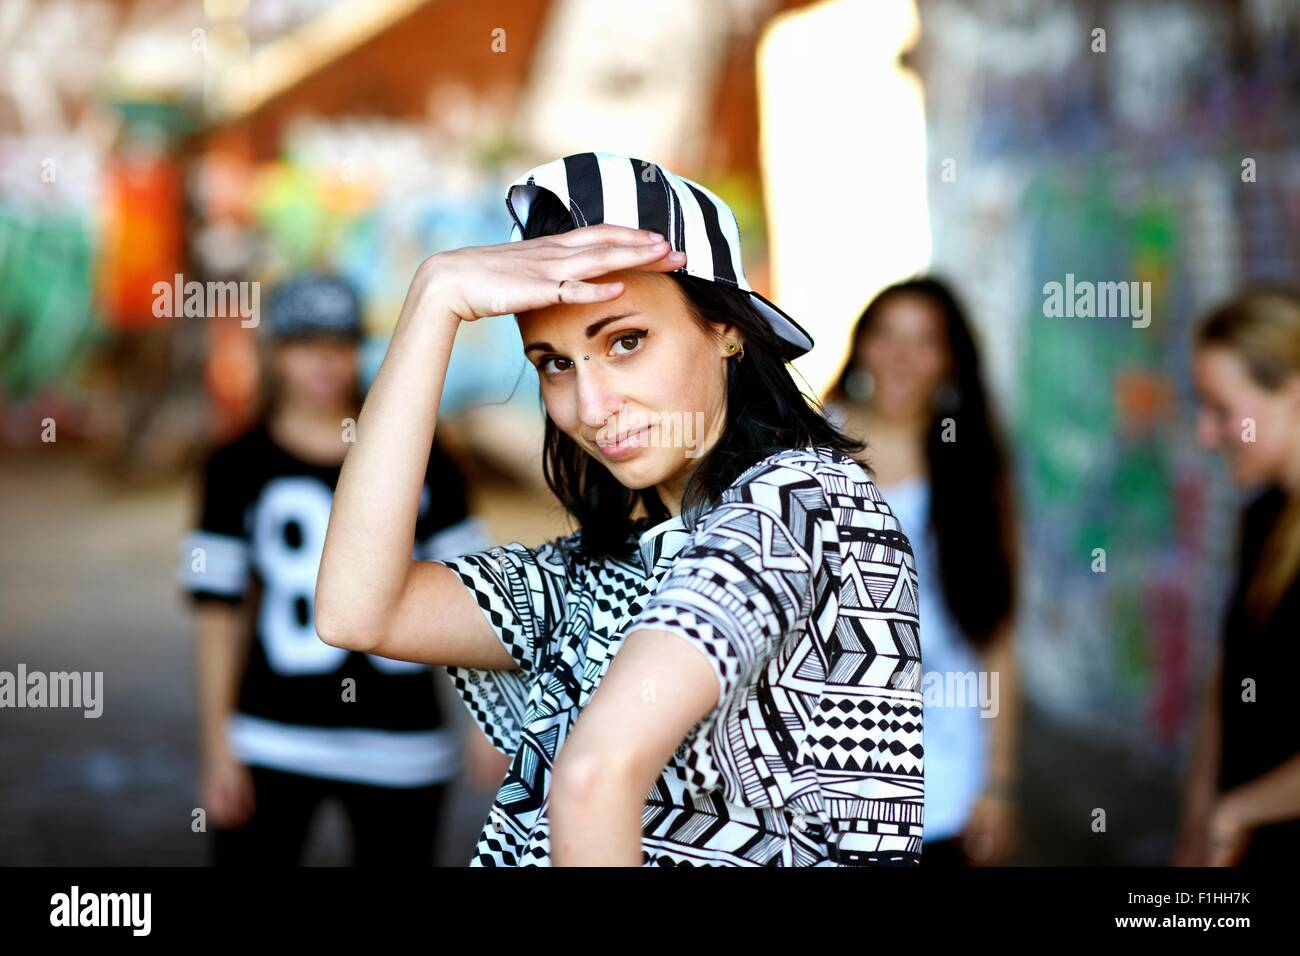 Young woman wearing baseball cap backwards, looking at camera - Stock Image